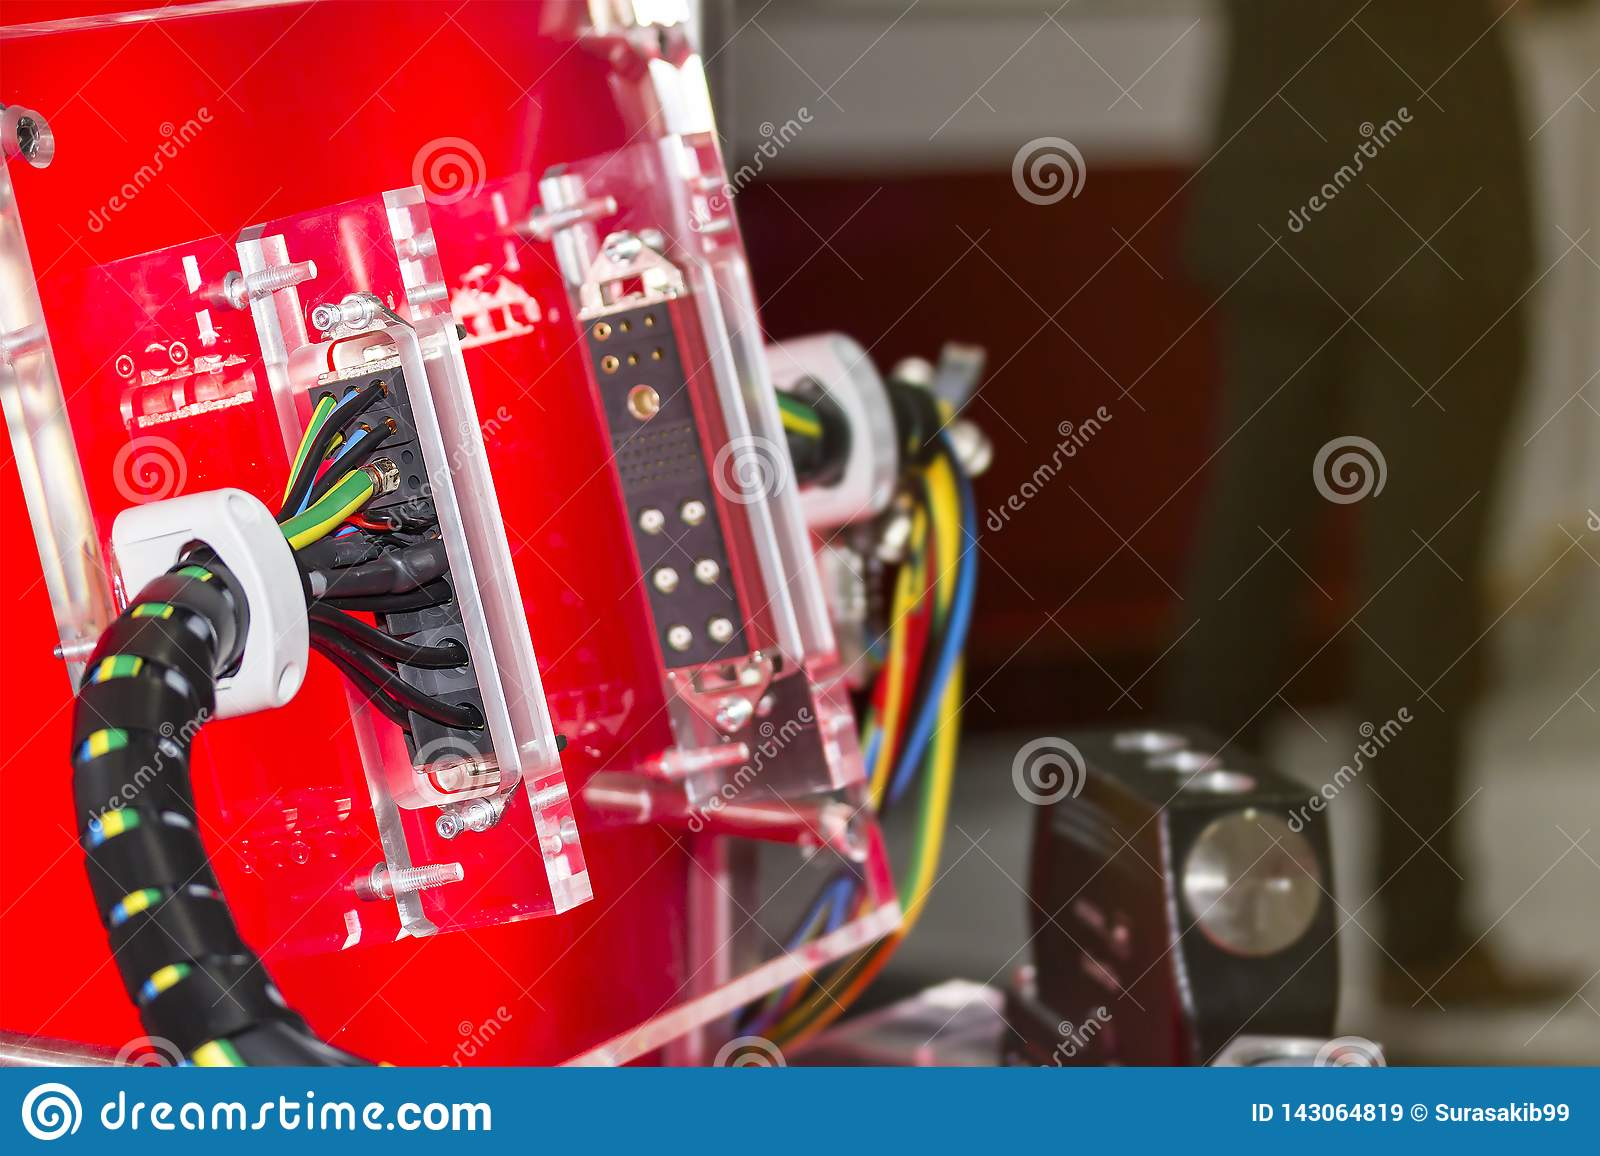 Electric Wire Connector For Industrial Machine And Other On Red Board Stock Image Image Of Design Electrical 143064819